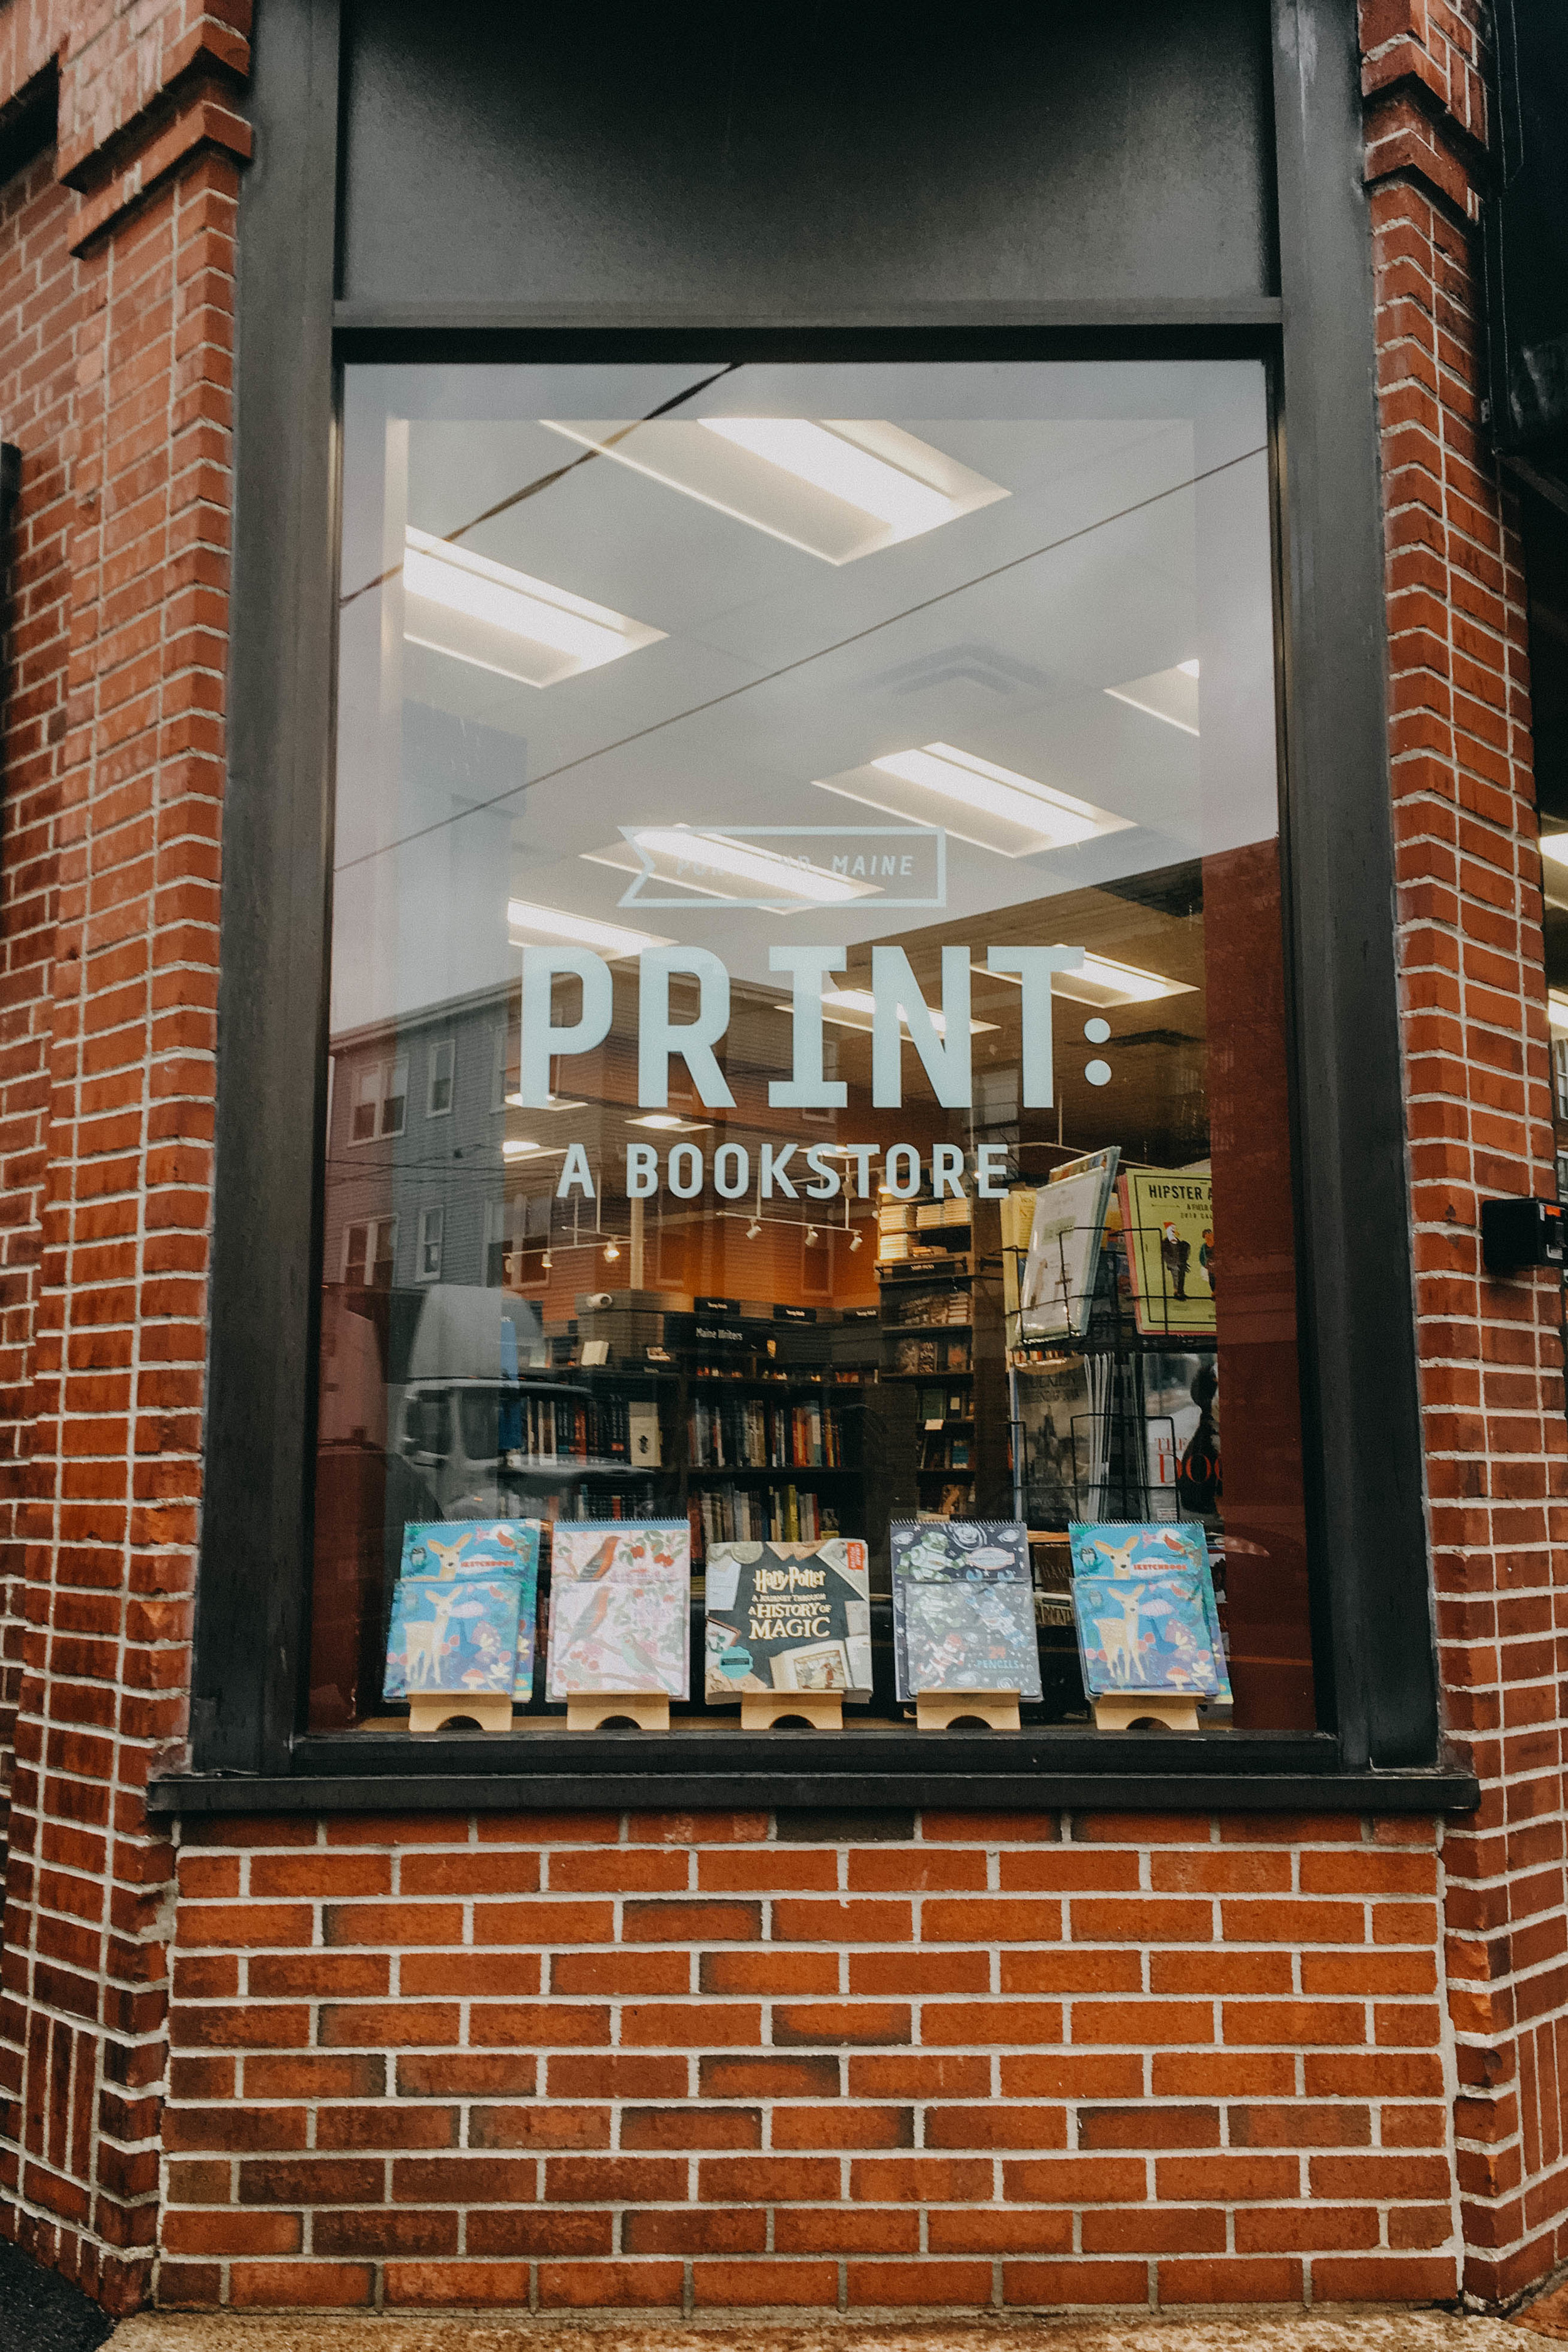 The cutest little bookstore in Portland. Print: a bookstore, carries a lot of books about Maine and authors from Maine!